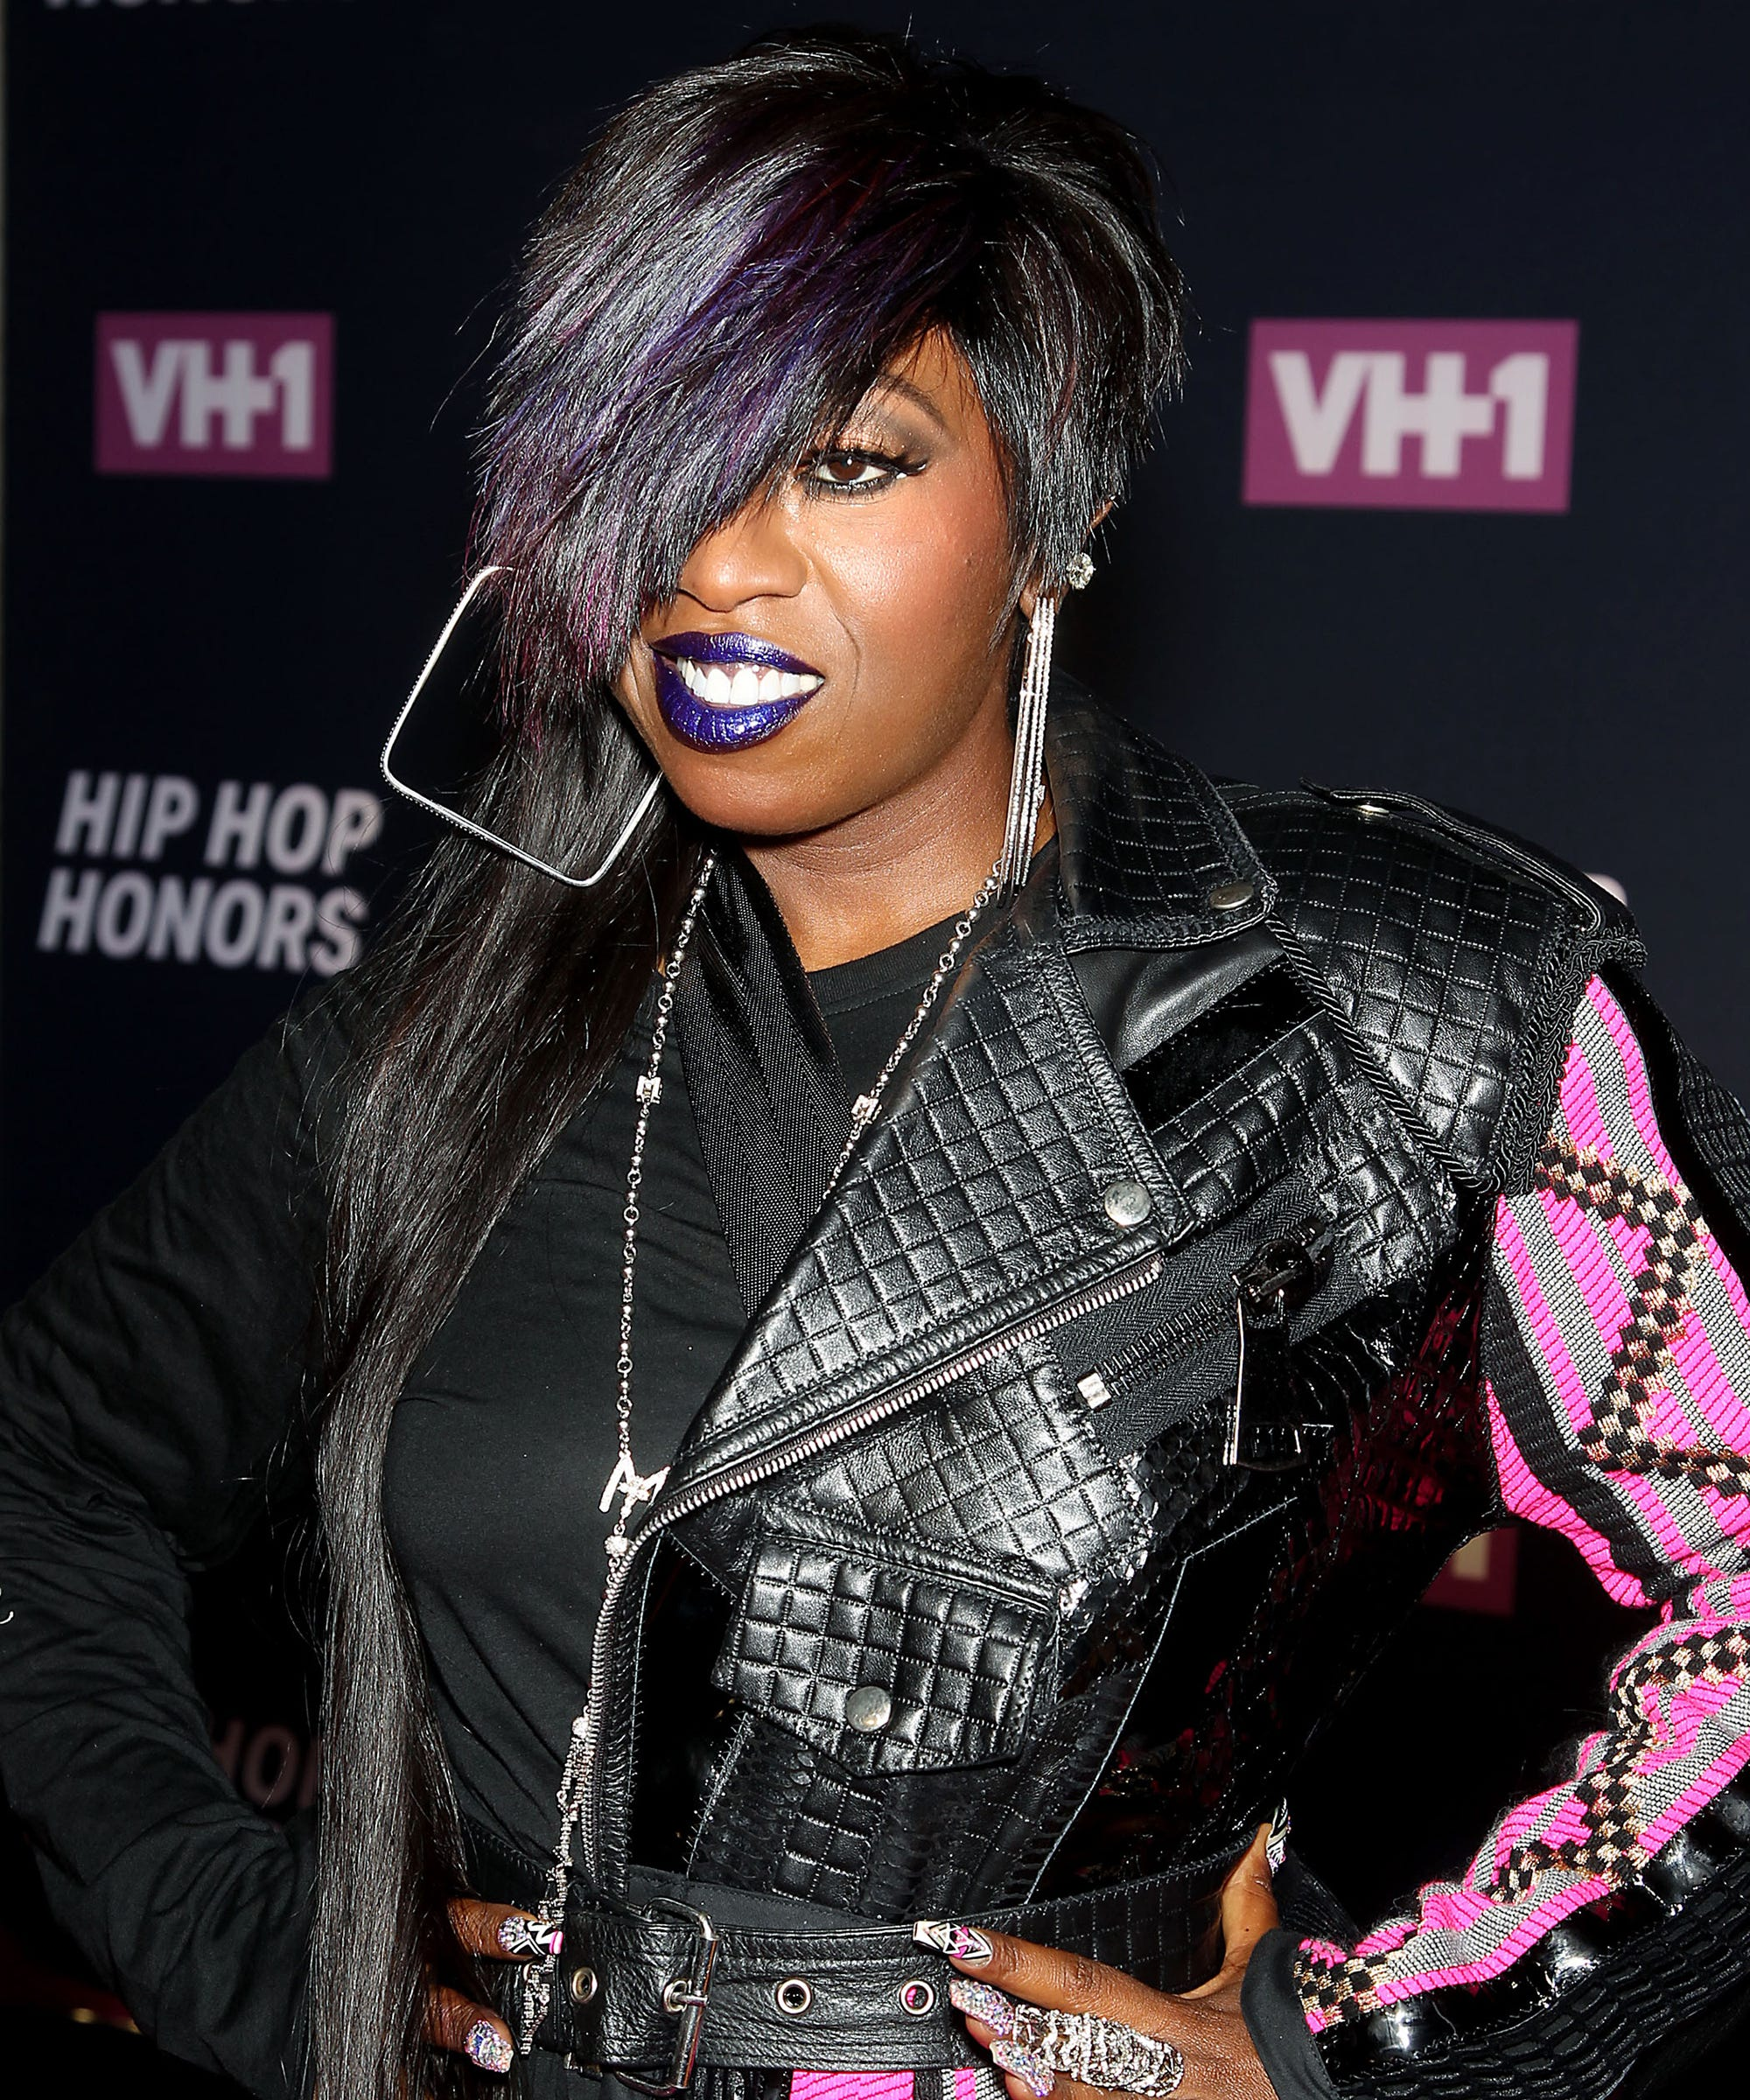 """the objectification of women in the pop music genre However, some have begun to question whether female artists' over-sexualized videos, like minaj's """"anaconda,"""" are also contributing to the objectification of women in music even though a woman is the primary authority on these videos' creative decisions, many say the power is being wasted by presenting women in the same light as some male artists do."""